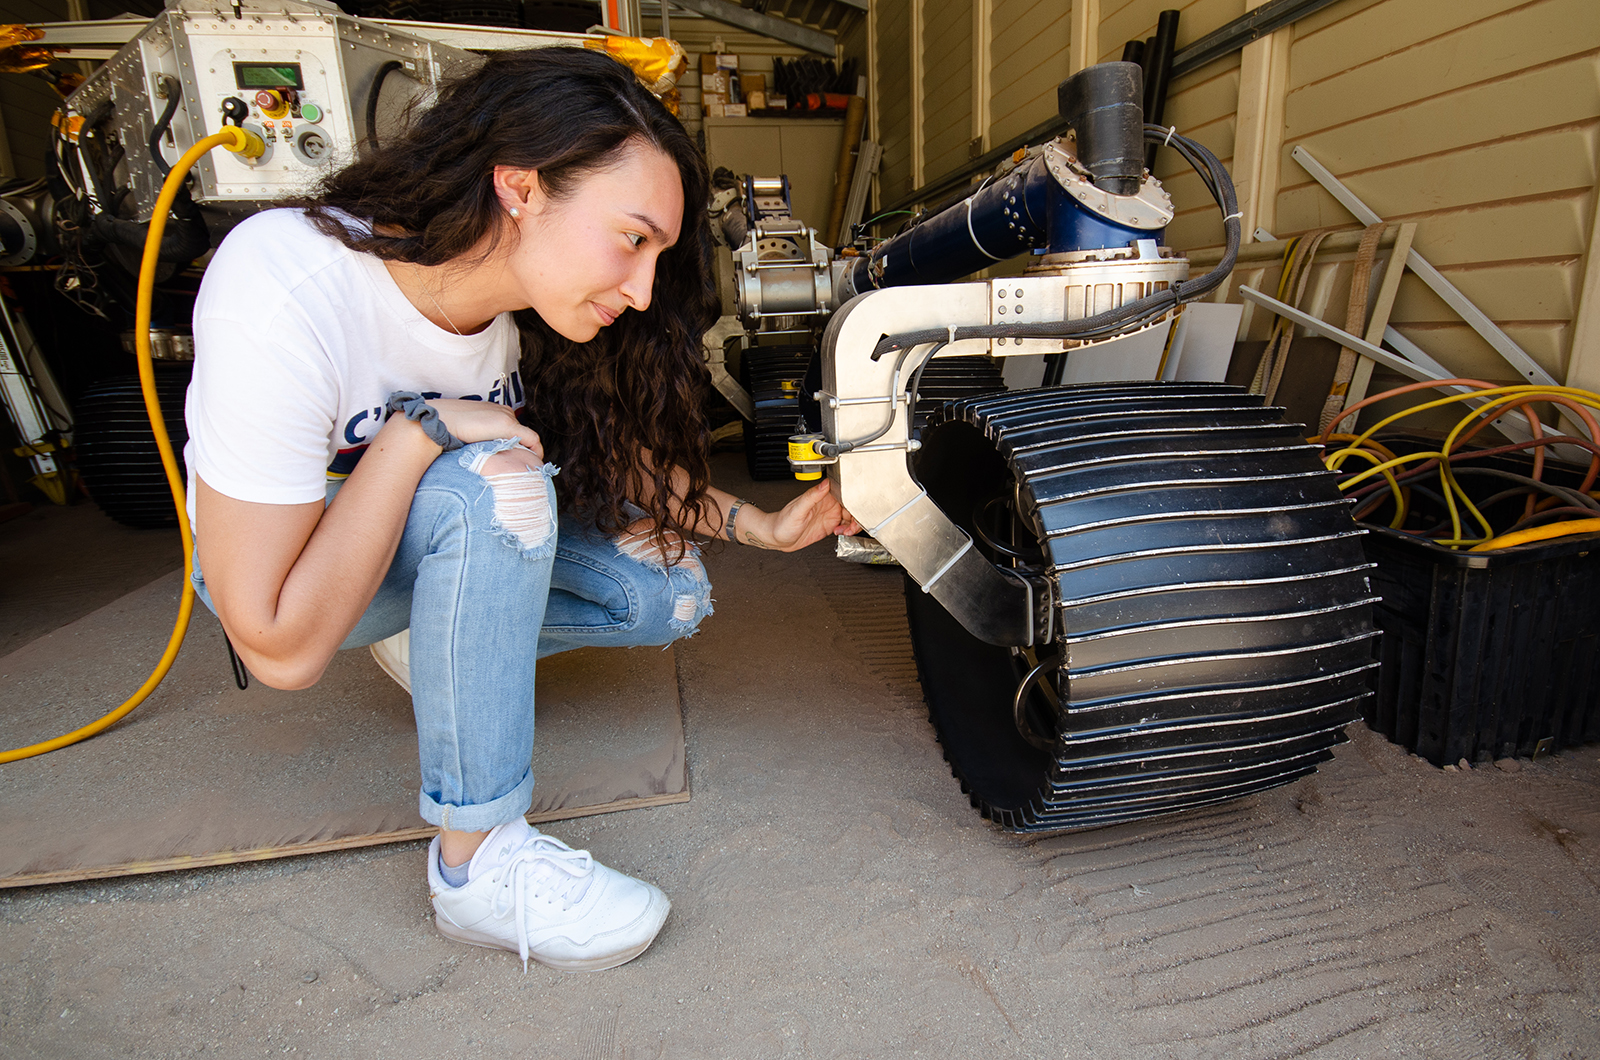 Isabel Rayas kneels down in front of the Scarecrow rover in a garage and places her hand on one of the front wheels